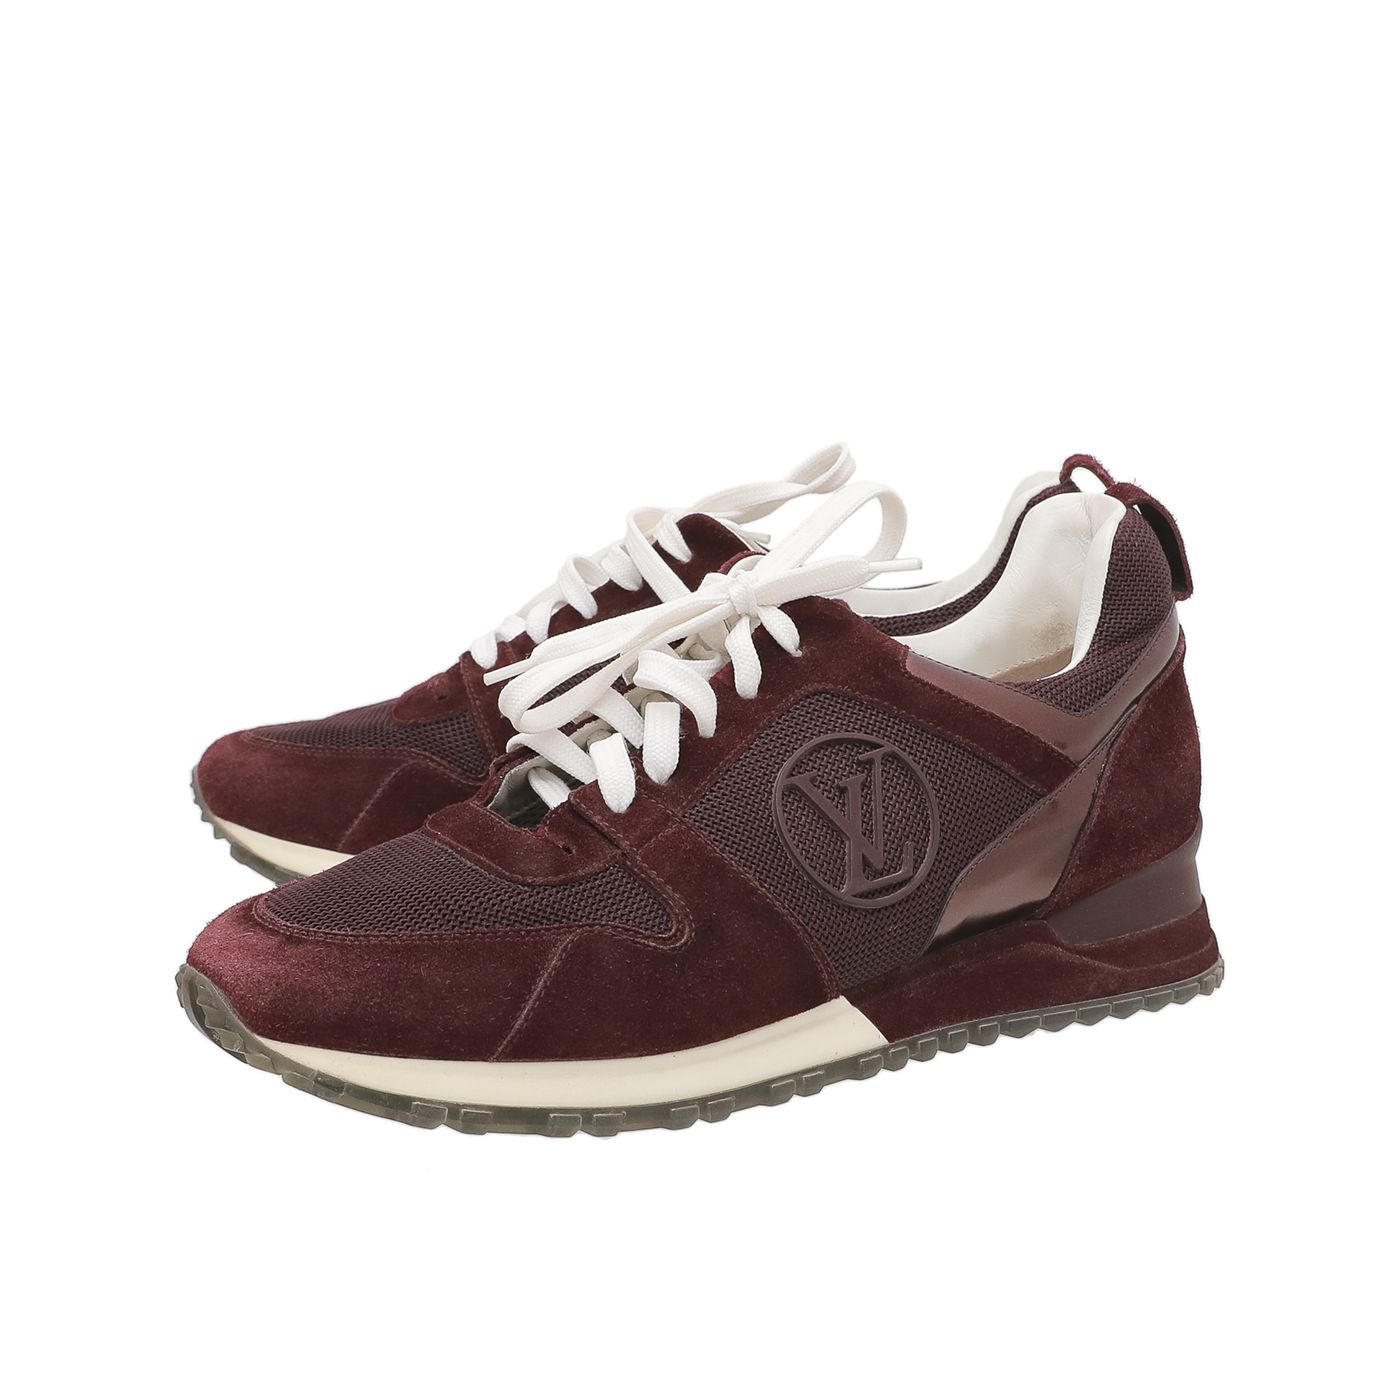 Louis Vuitton Maroon Run Away Sneakers 41